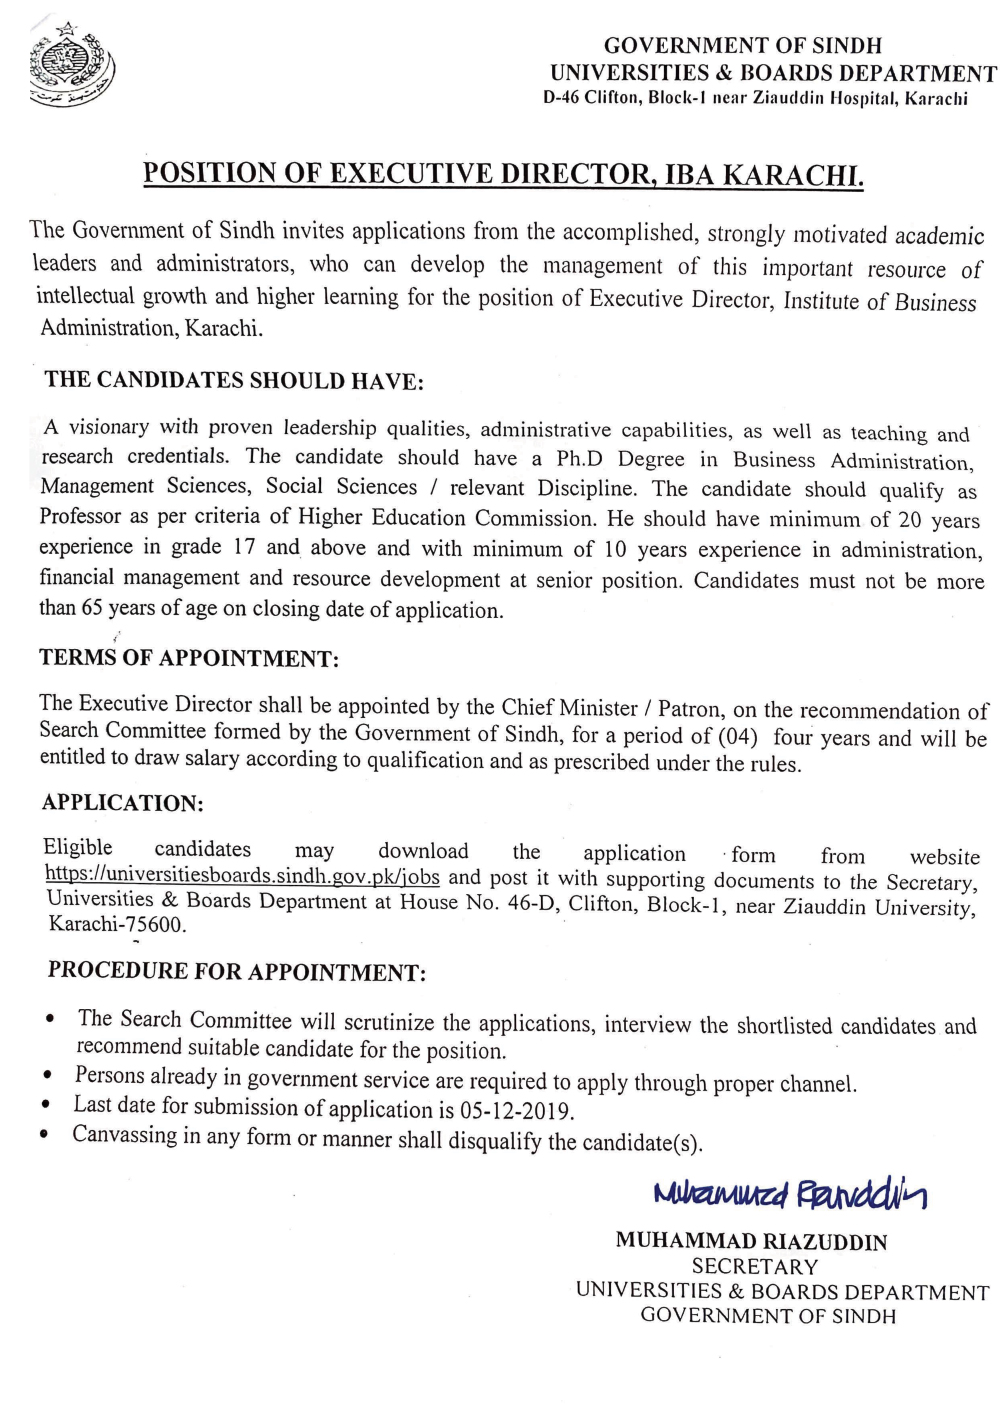 Position of Executive Director Advertisement